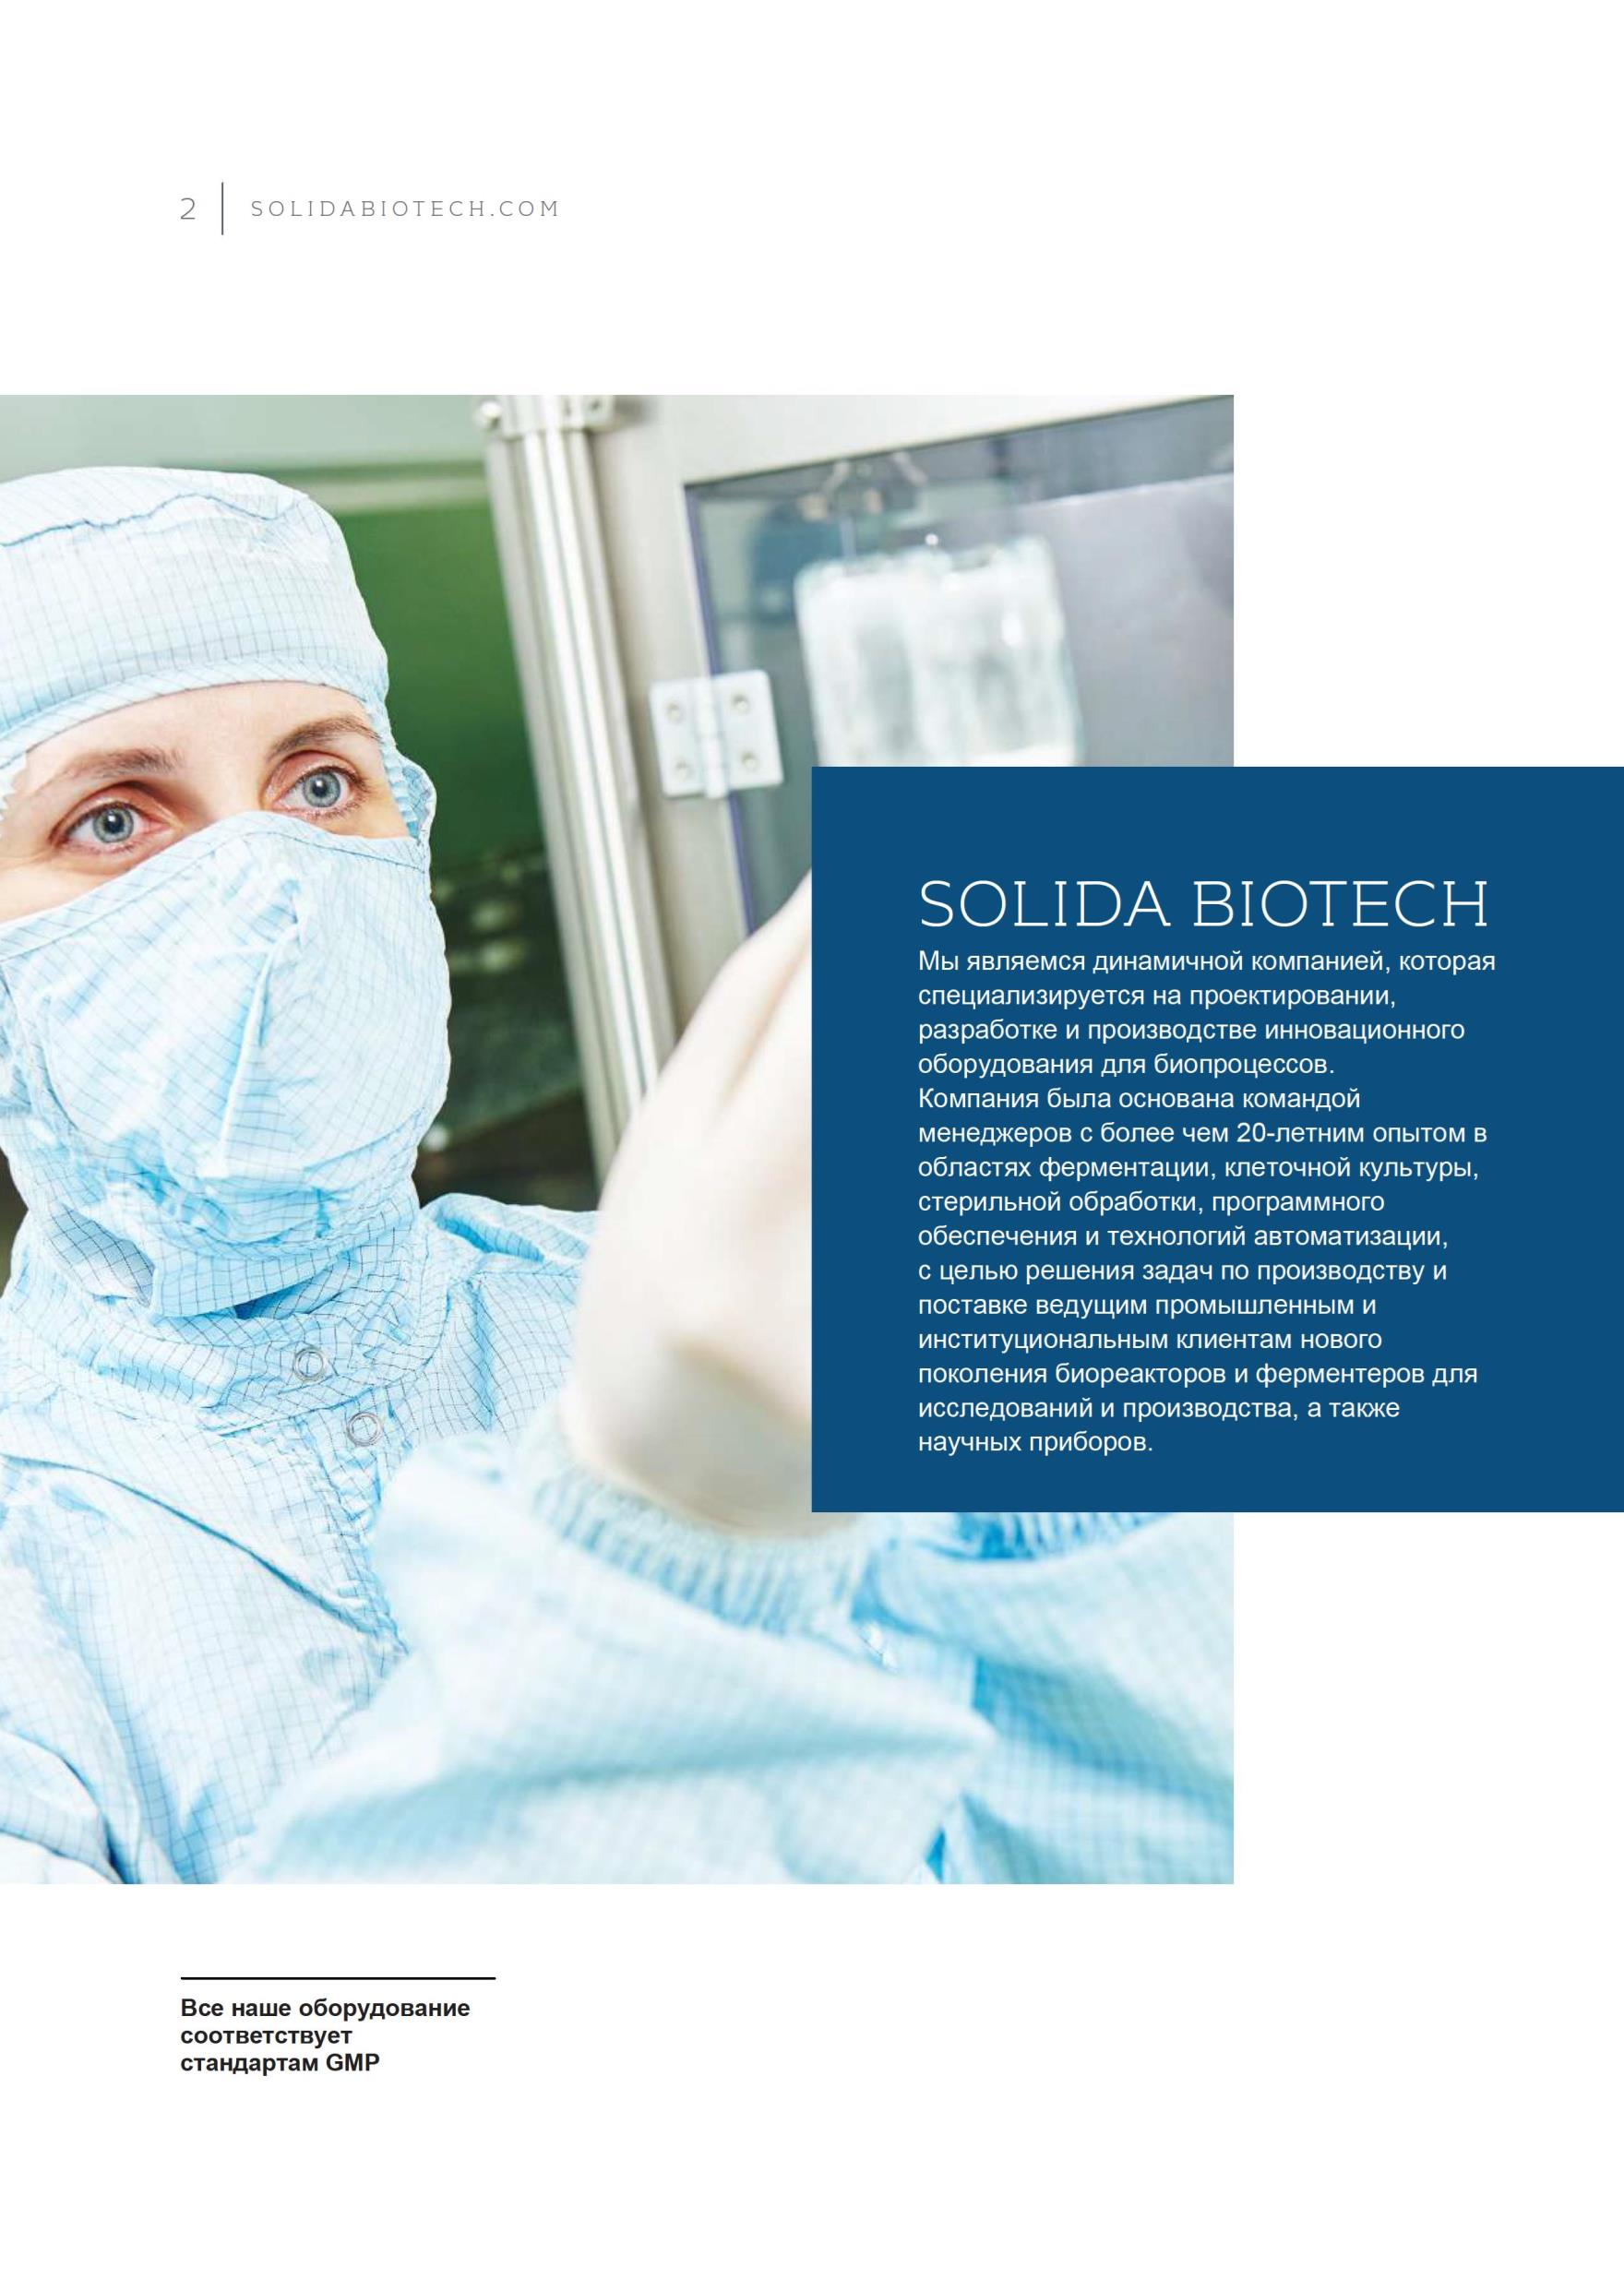 General Catalogue Solida Biotech GmBH2_compressed (2 - 0002